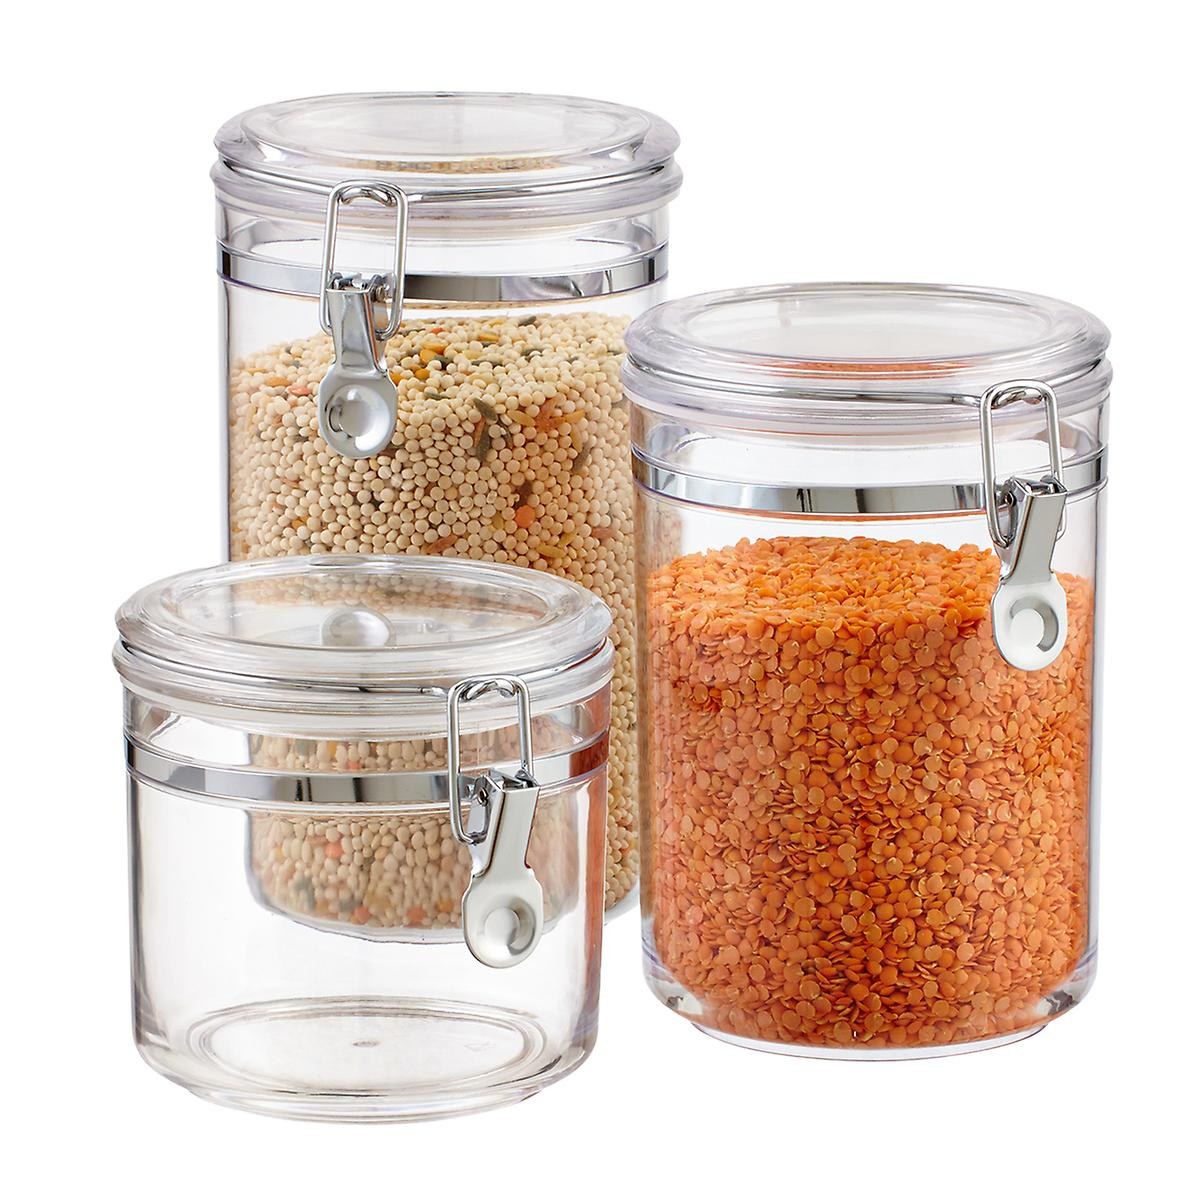 Space in the kitchen by adding shelves and glass canisters with seals - Hermetic Acrylic Canisters